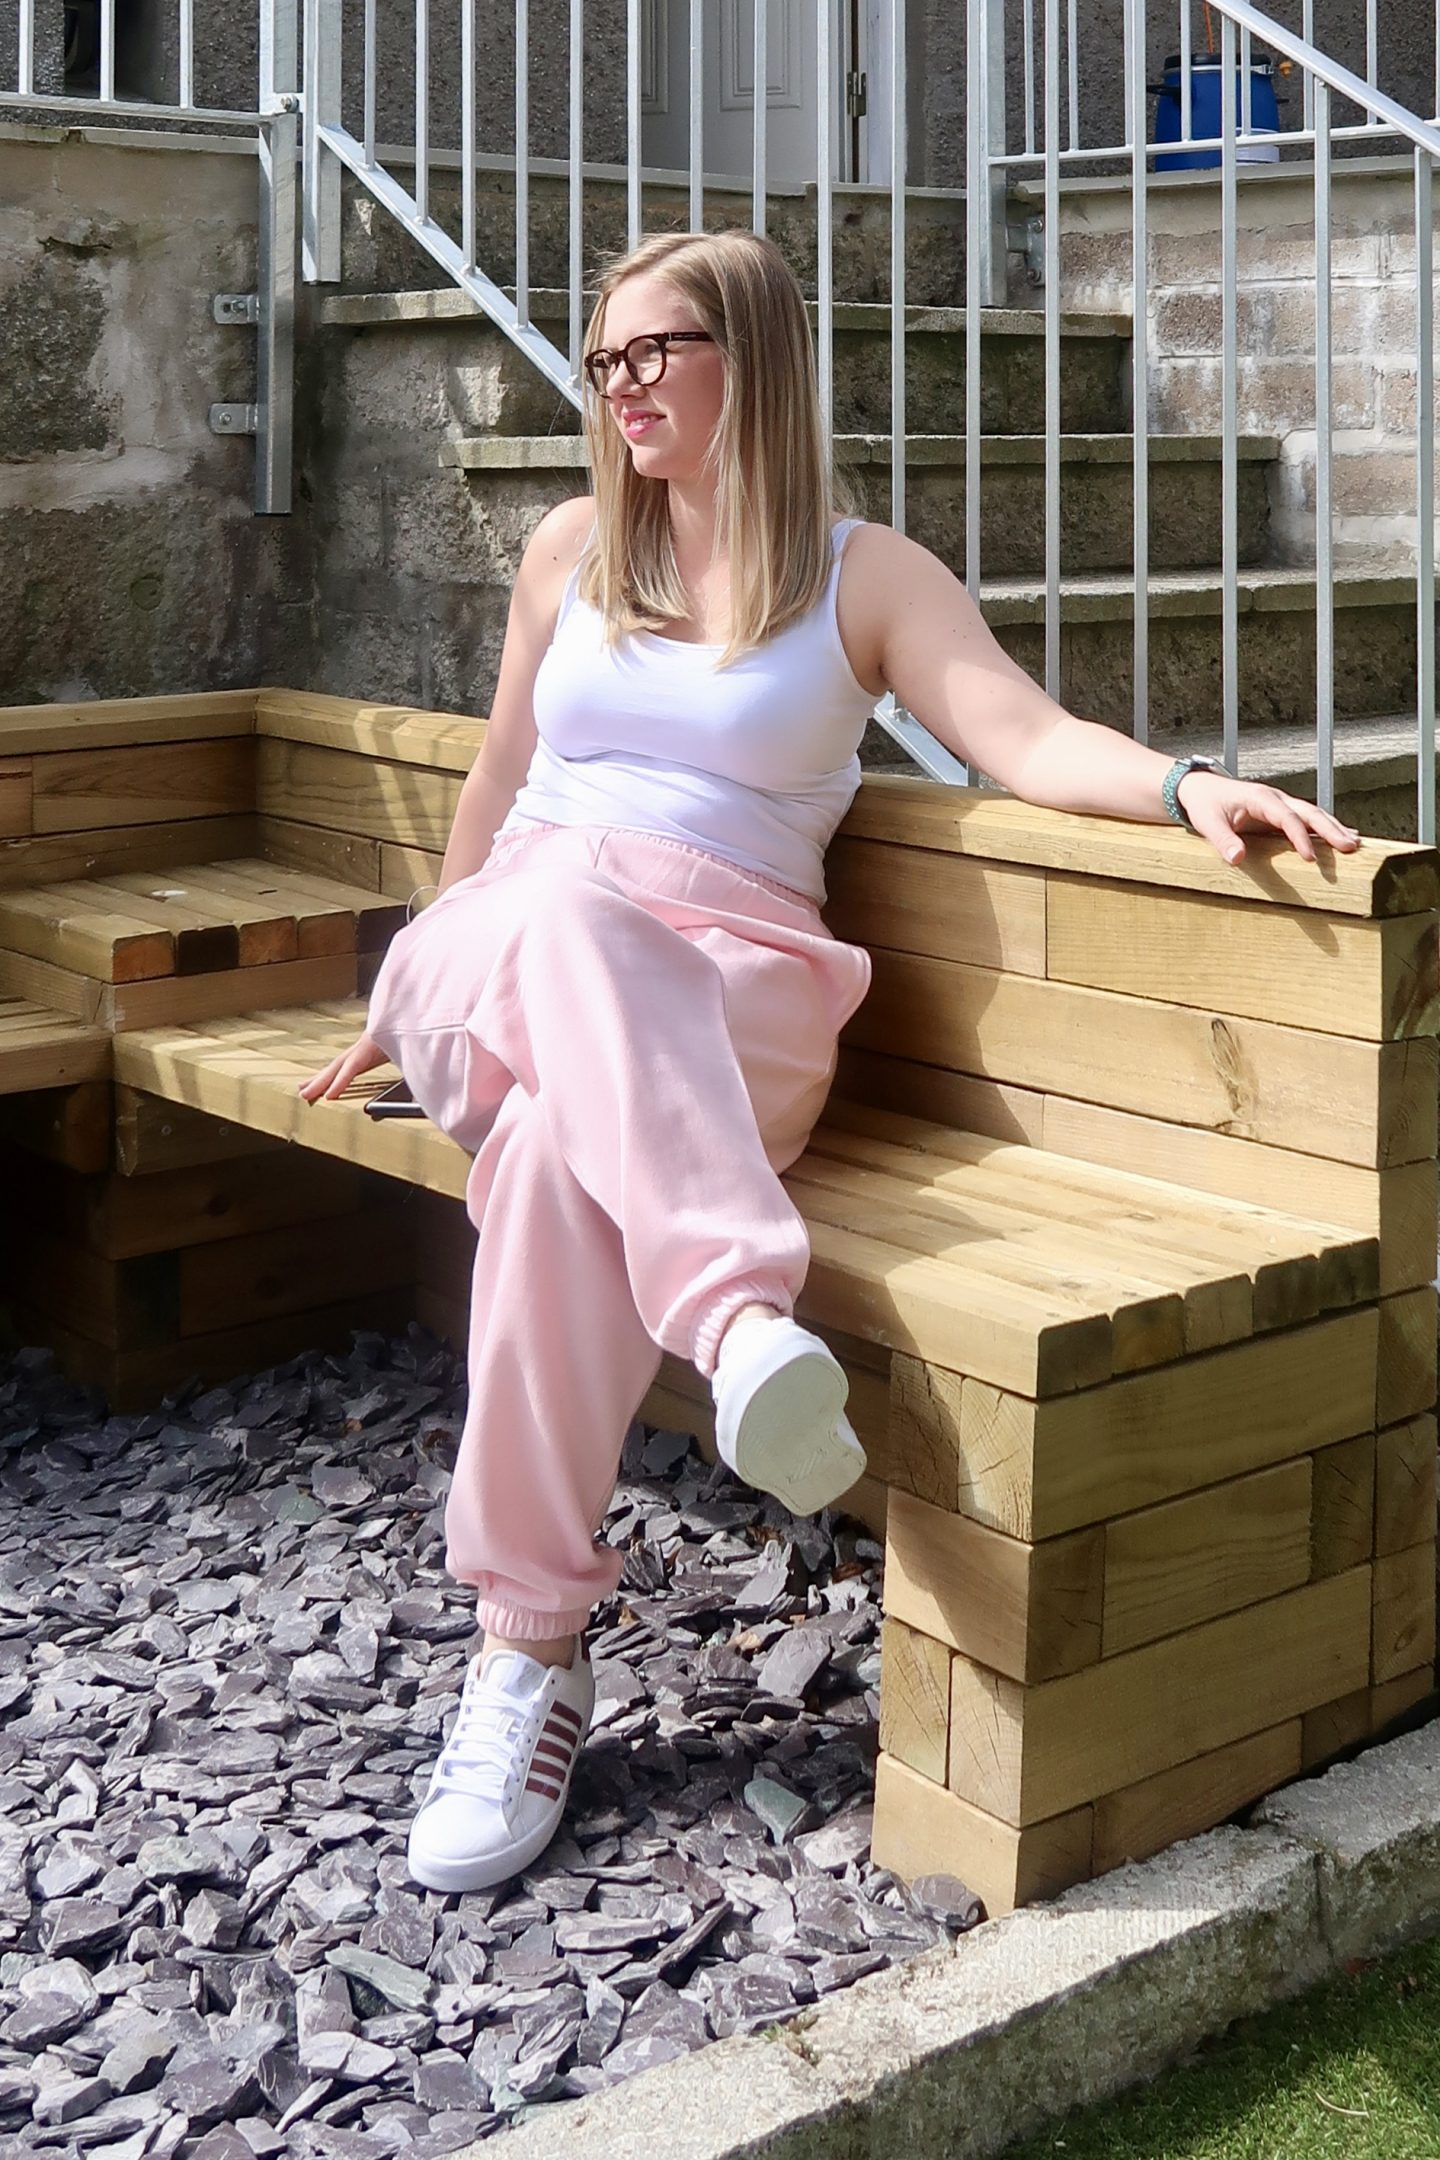 A girl sitting on a wooden bench wearing pink joggers and a white tank top